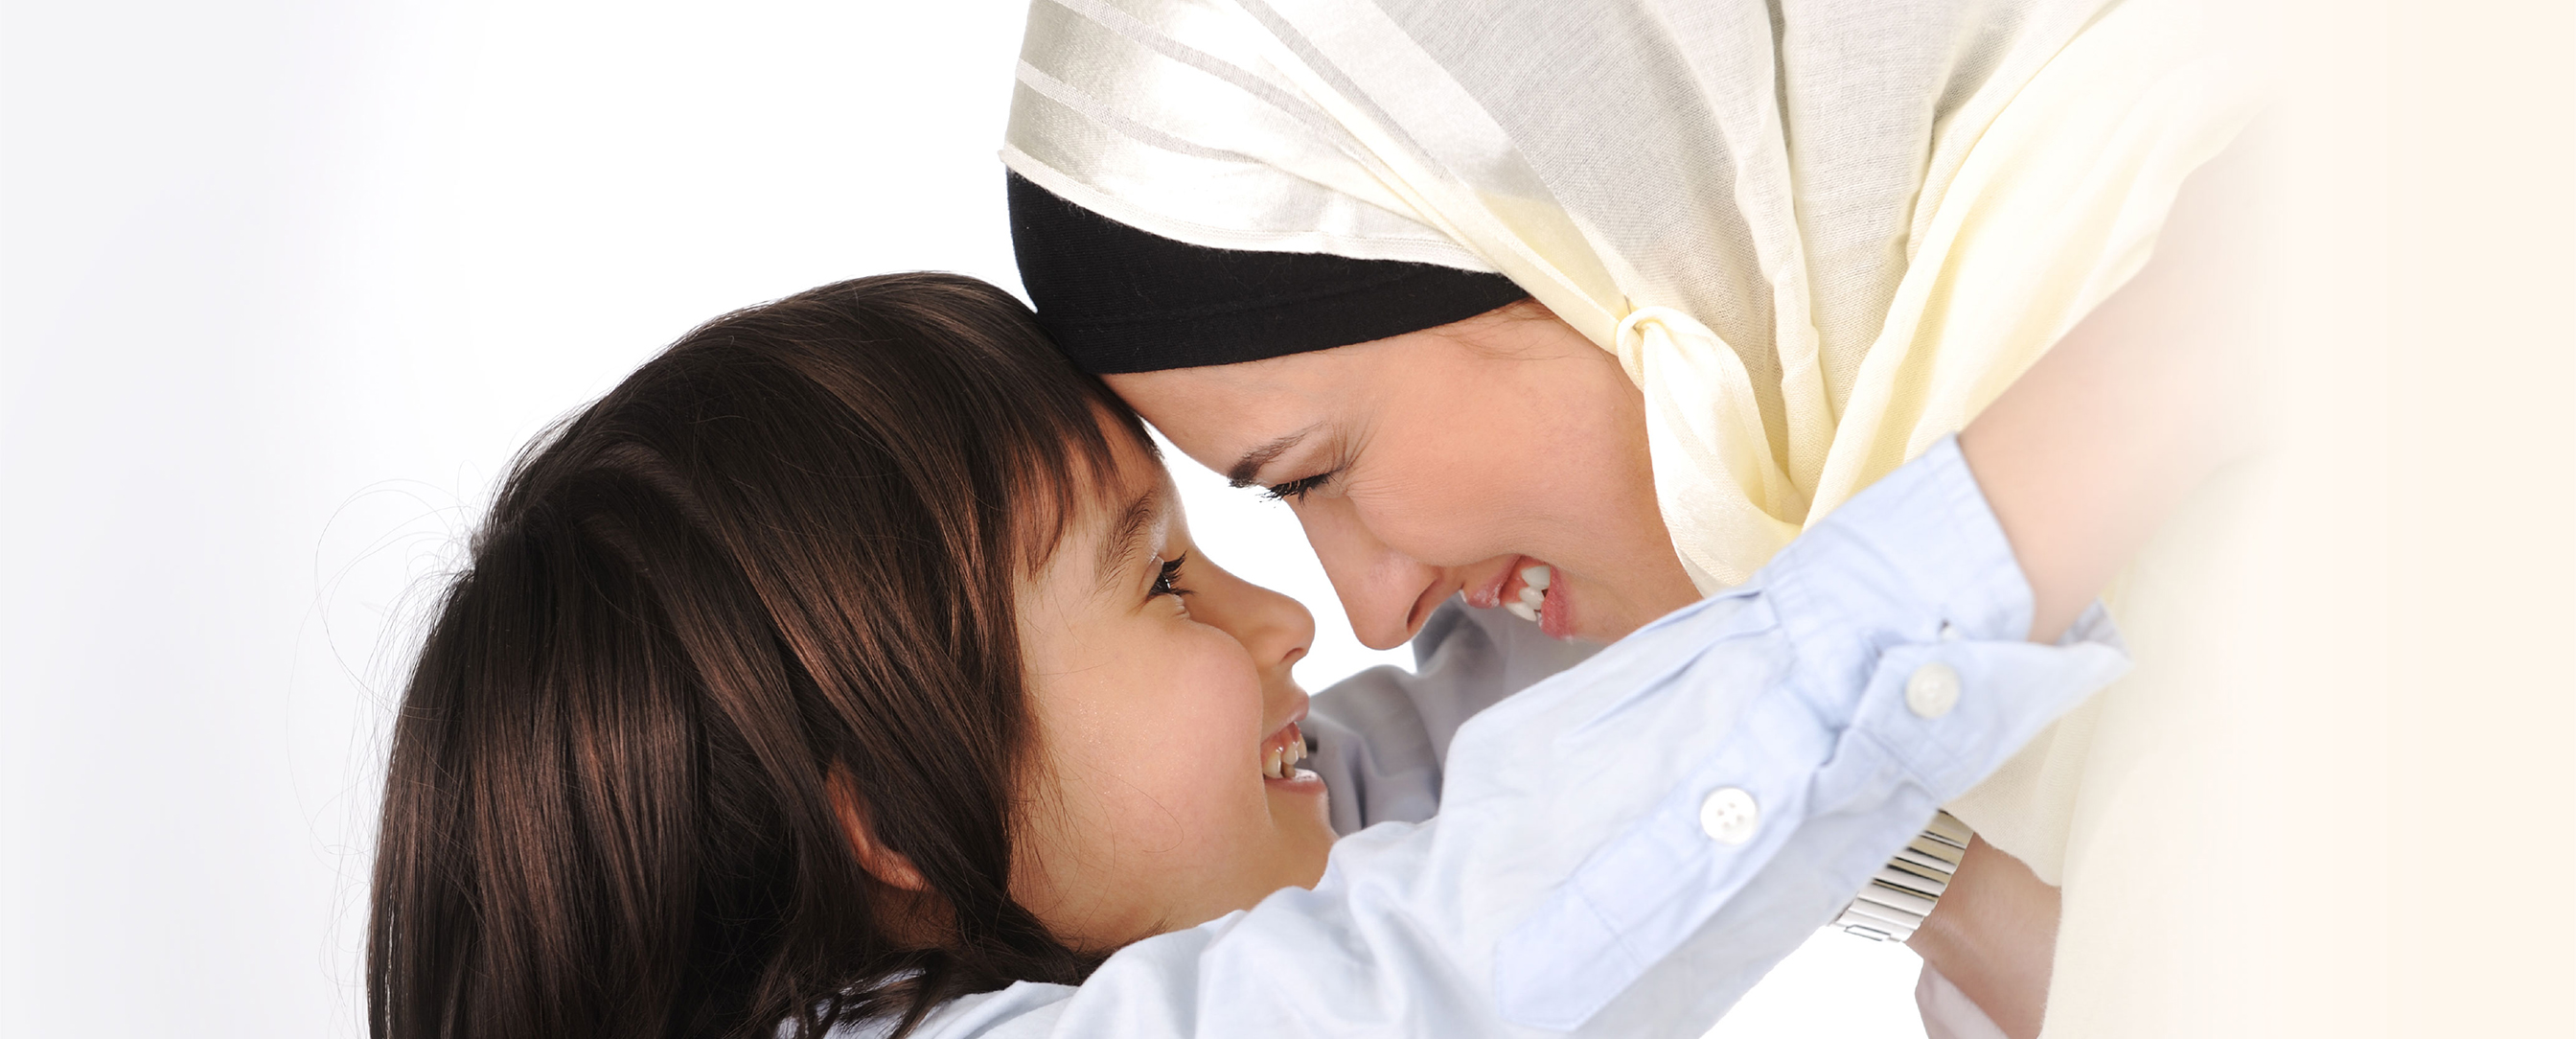 Why are Muslim foster carers needed in today's society?